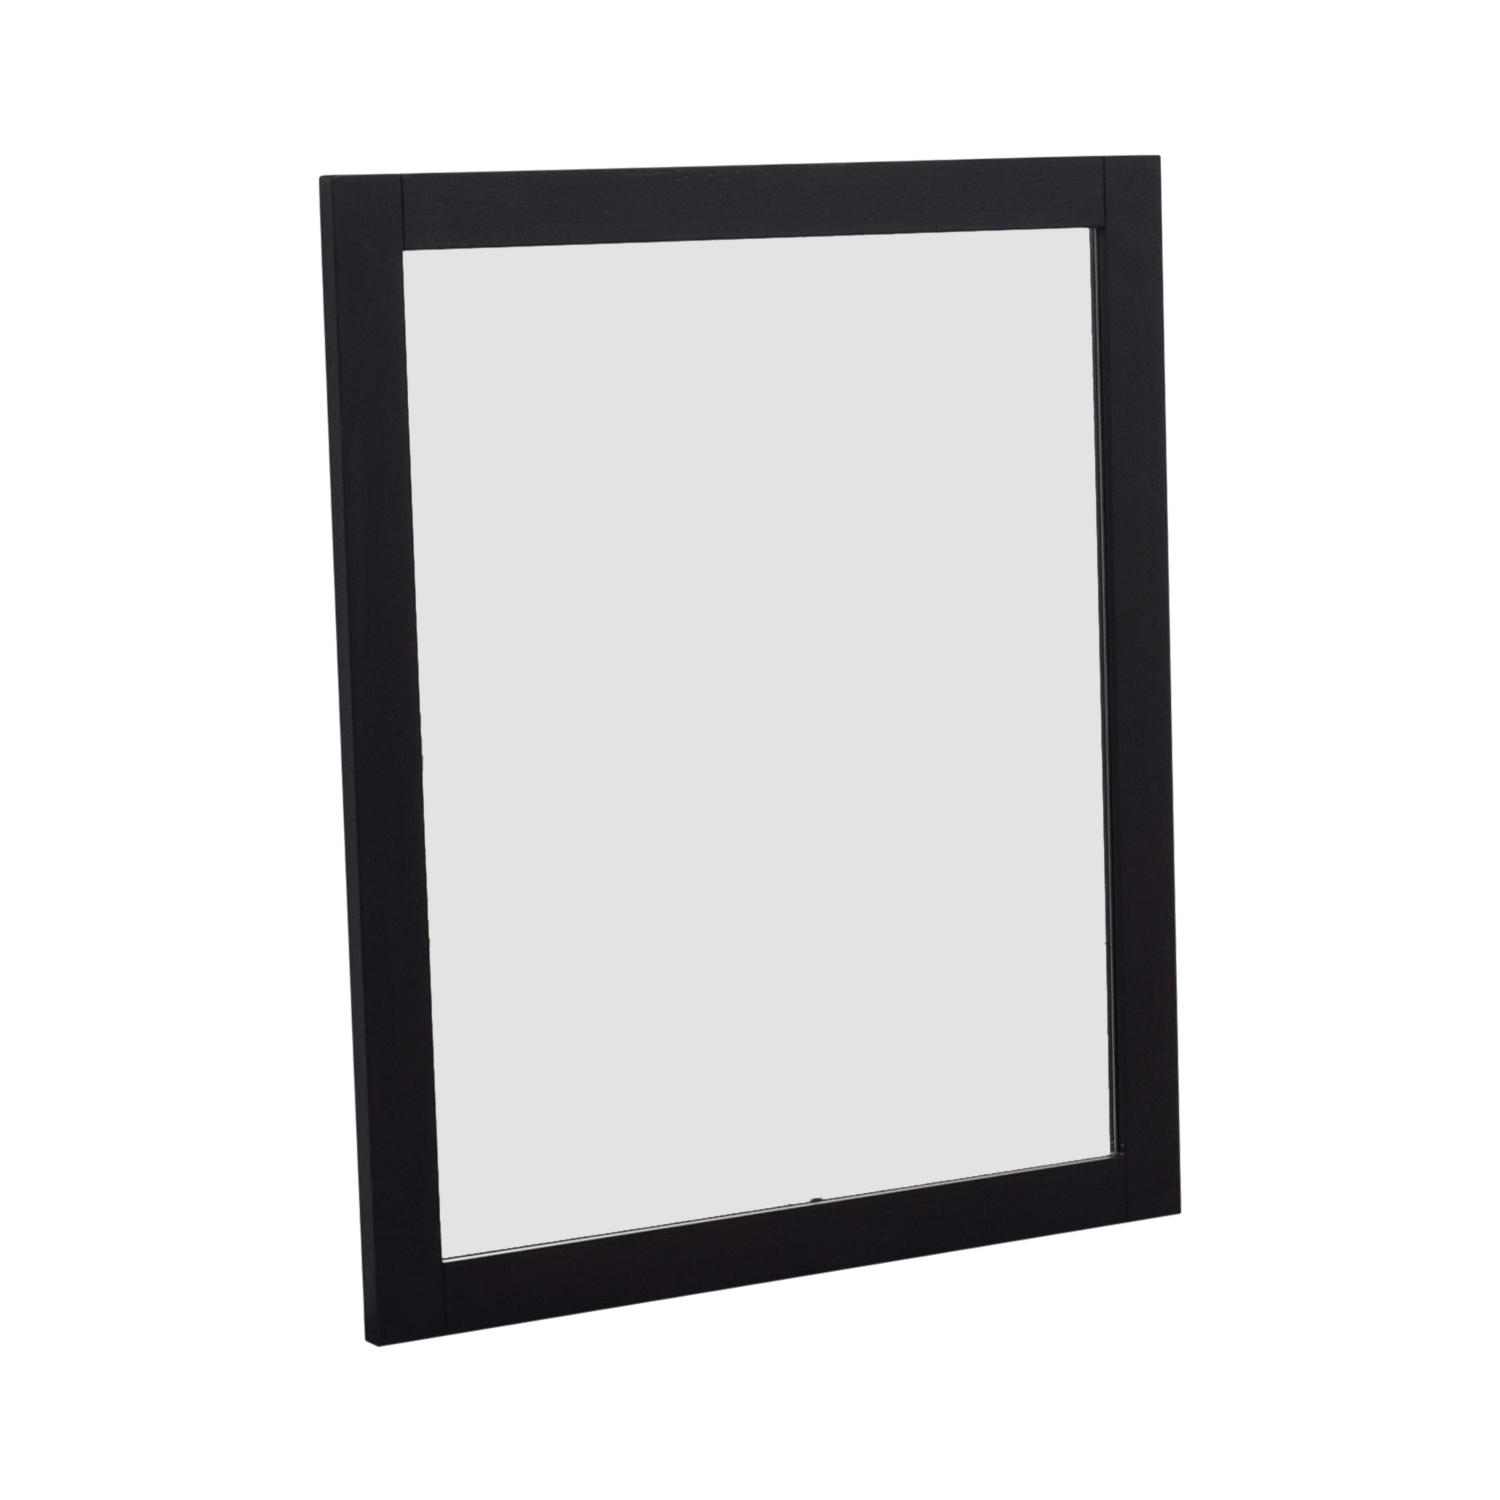 Wood Framed Mirror sale